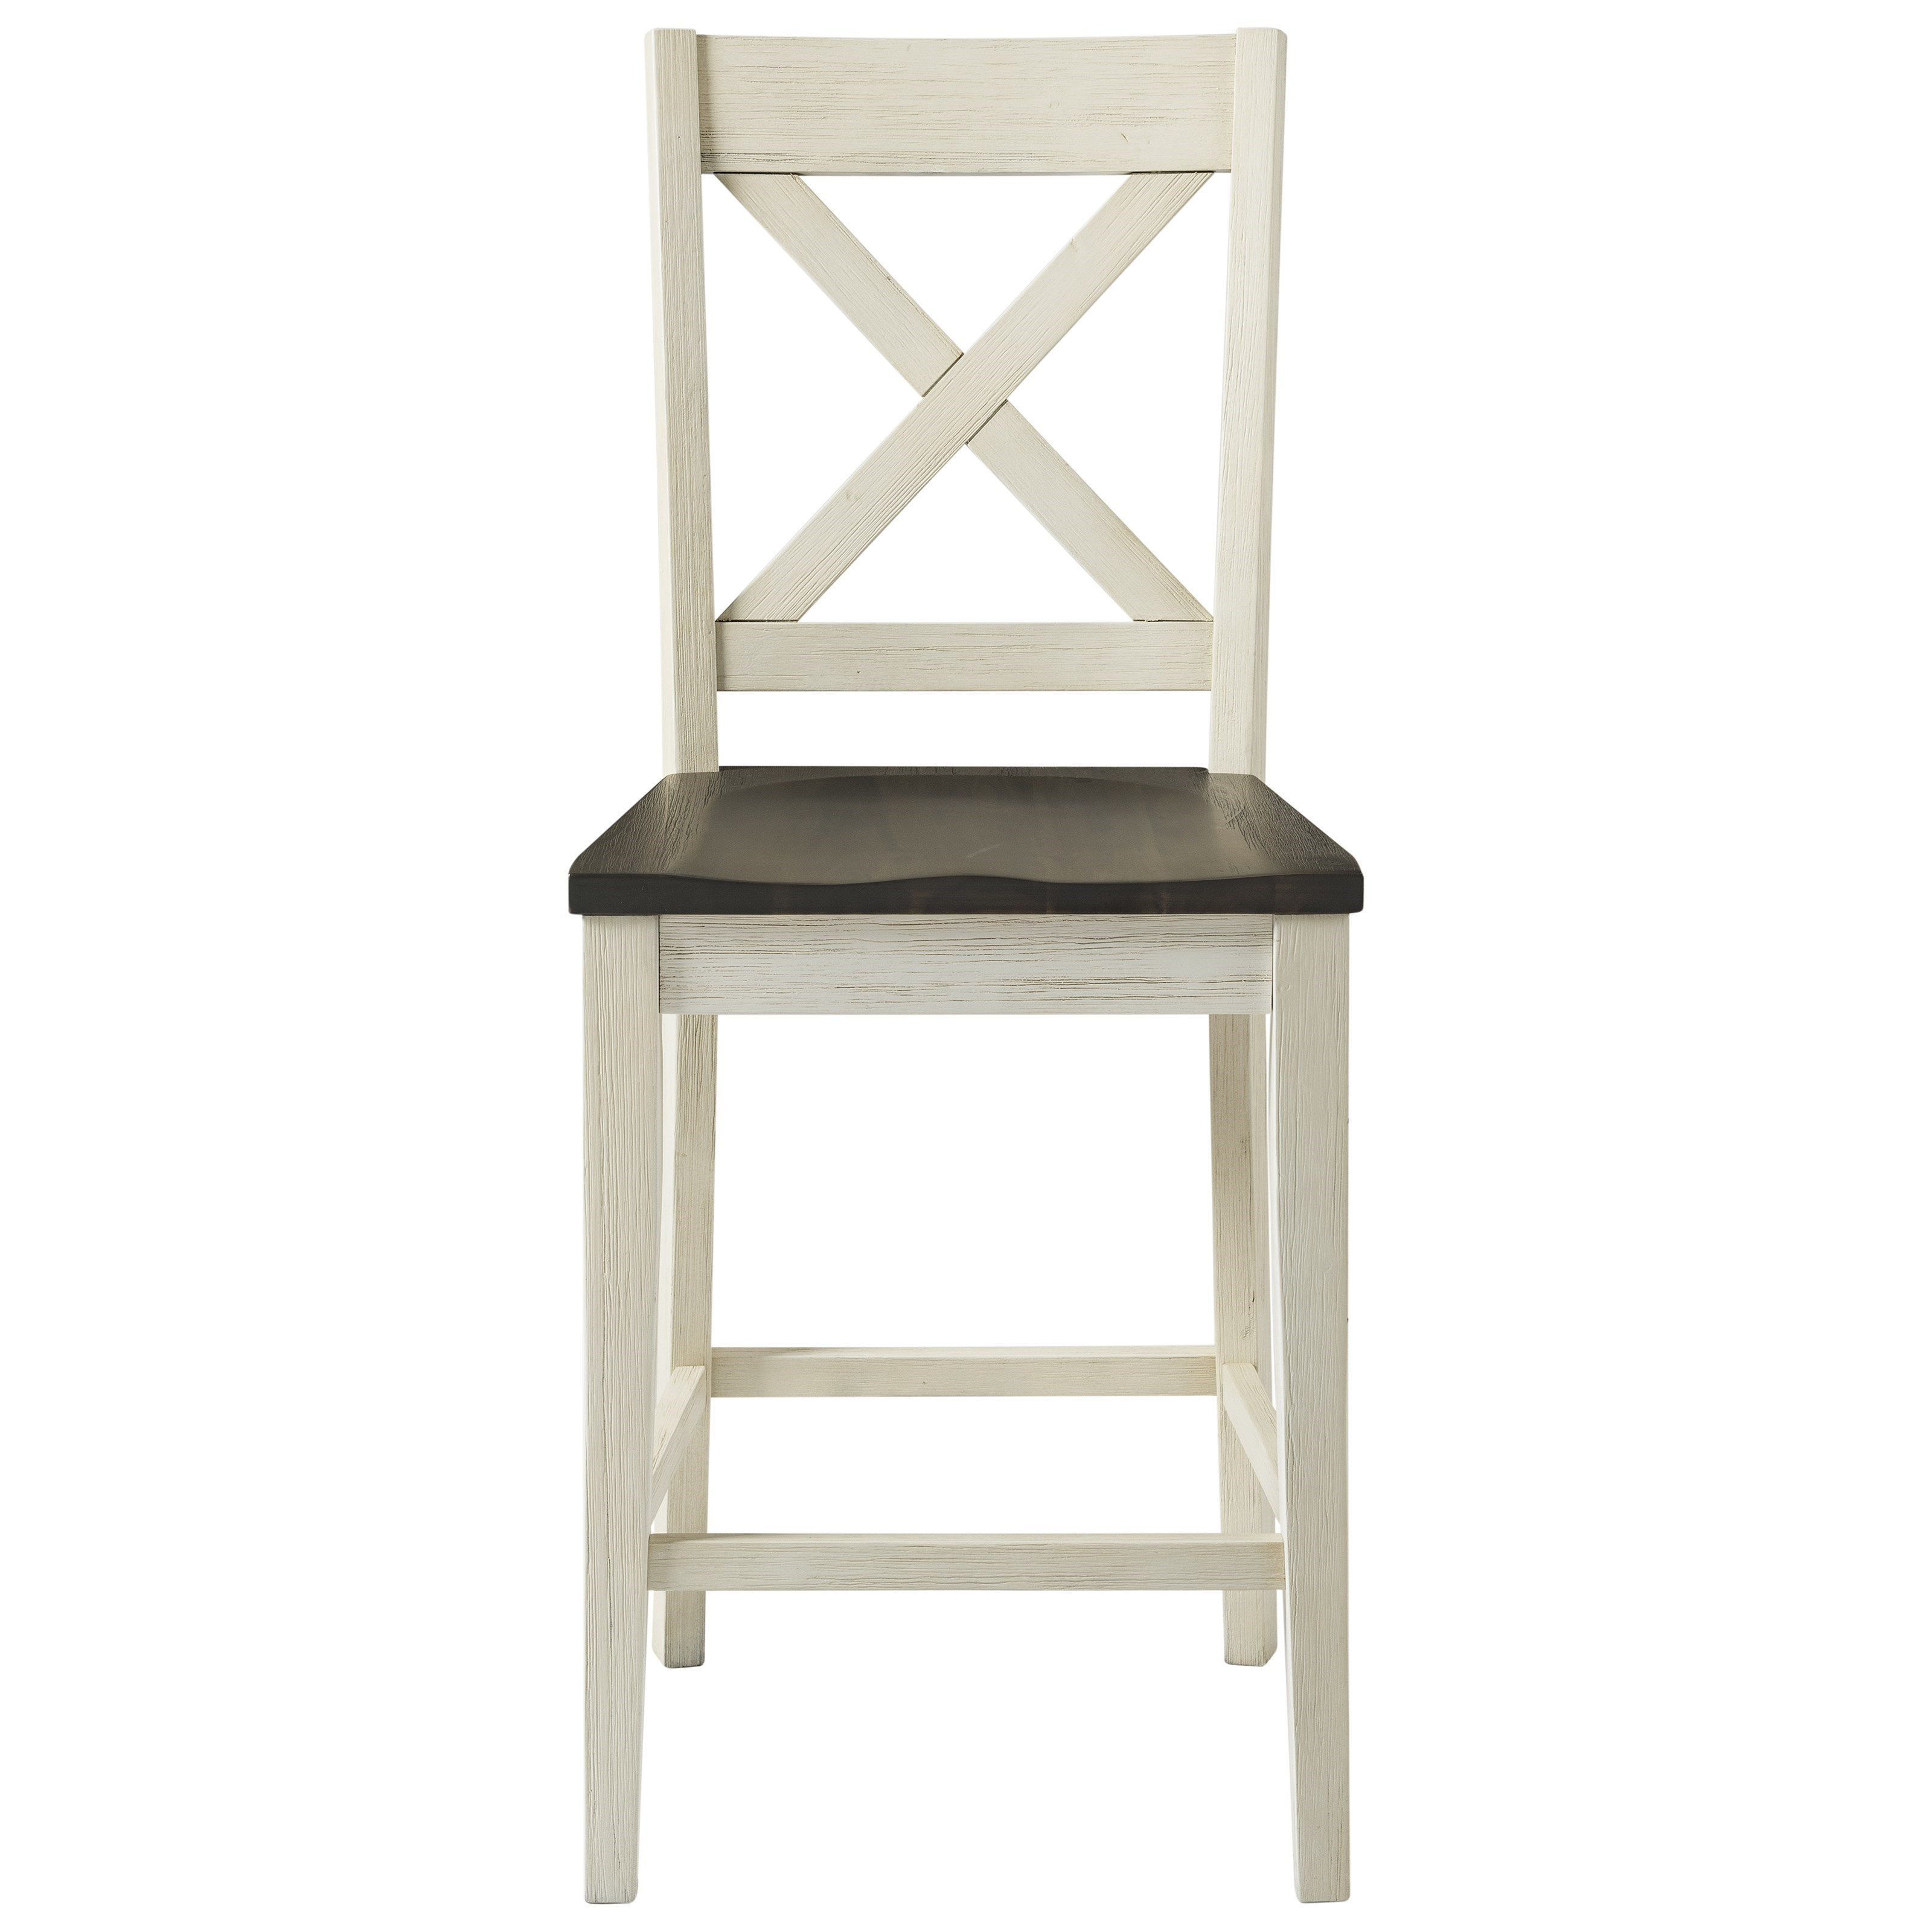 Wood Bar Chairs Huron Transitional Solid Wood Bar Stool With X Back Design By Aamerica At Wayside Furniture